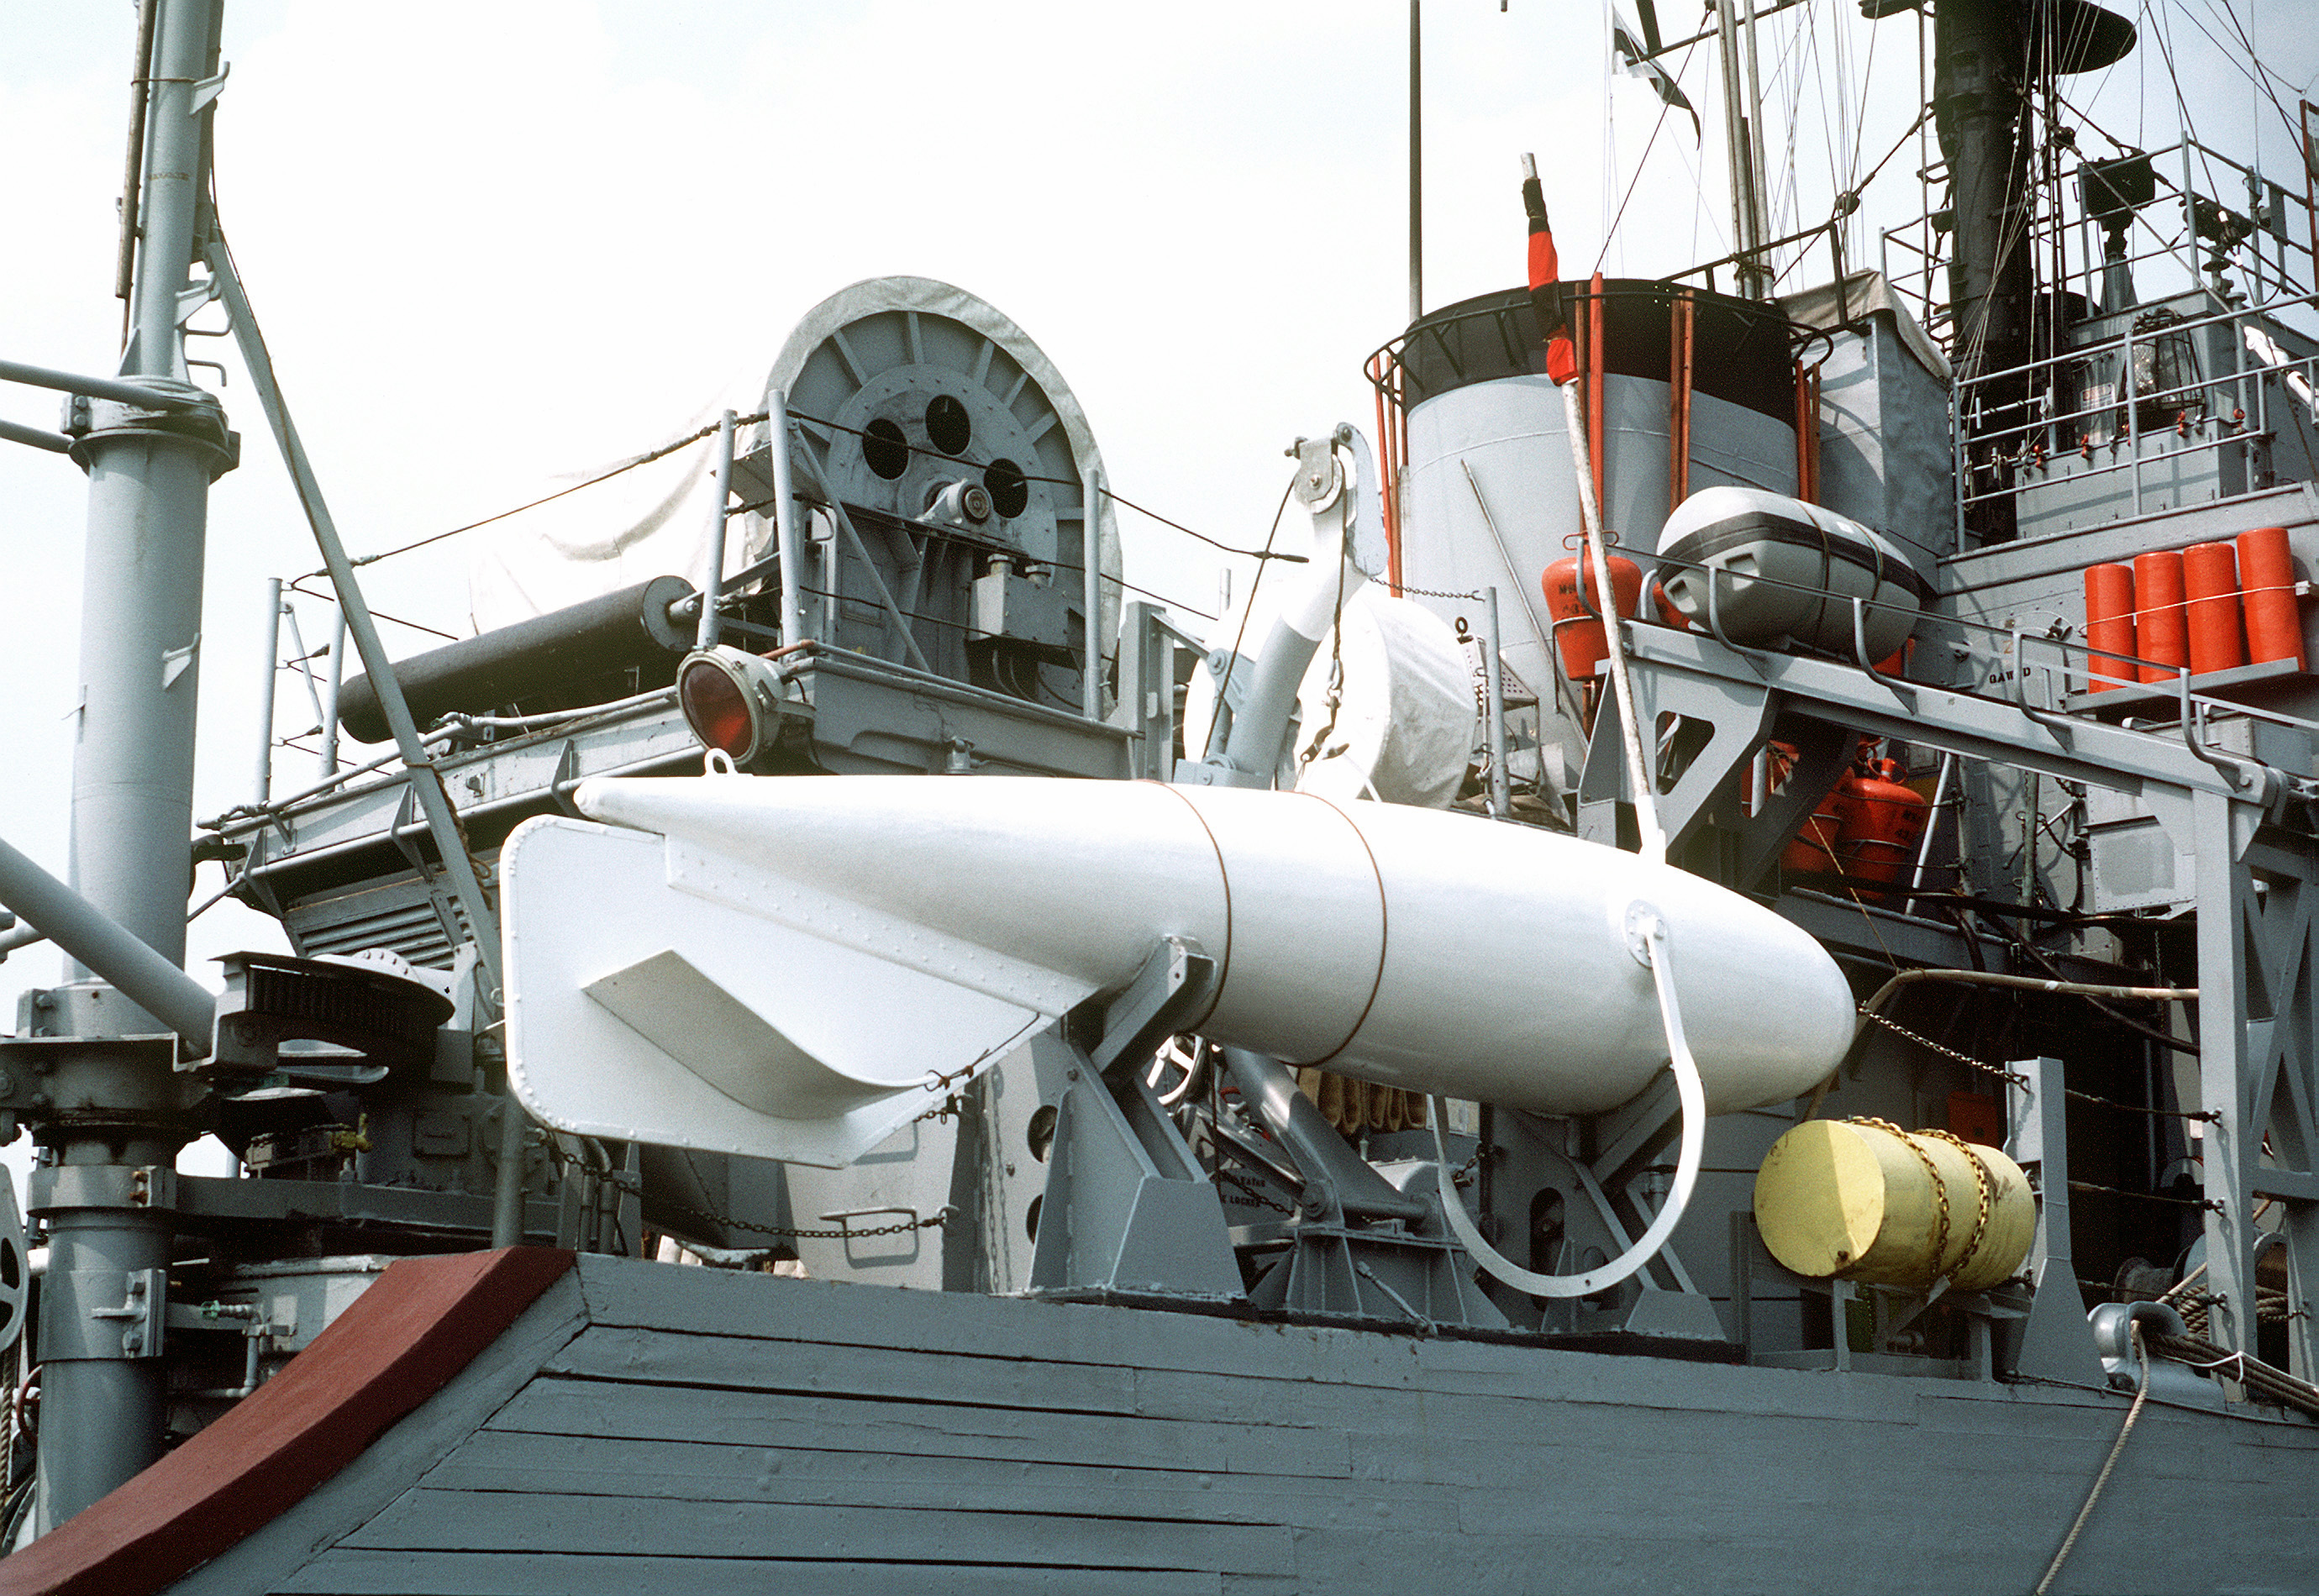 A view of the amidships section of the ocean minesweeper USS ENGAGE (MSO-433) showing a paravane in its storage rack.